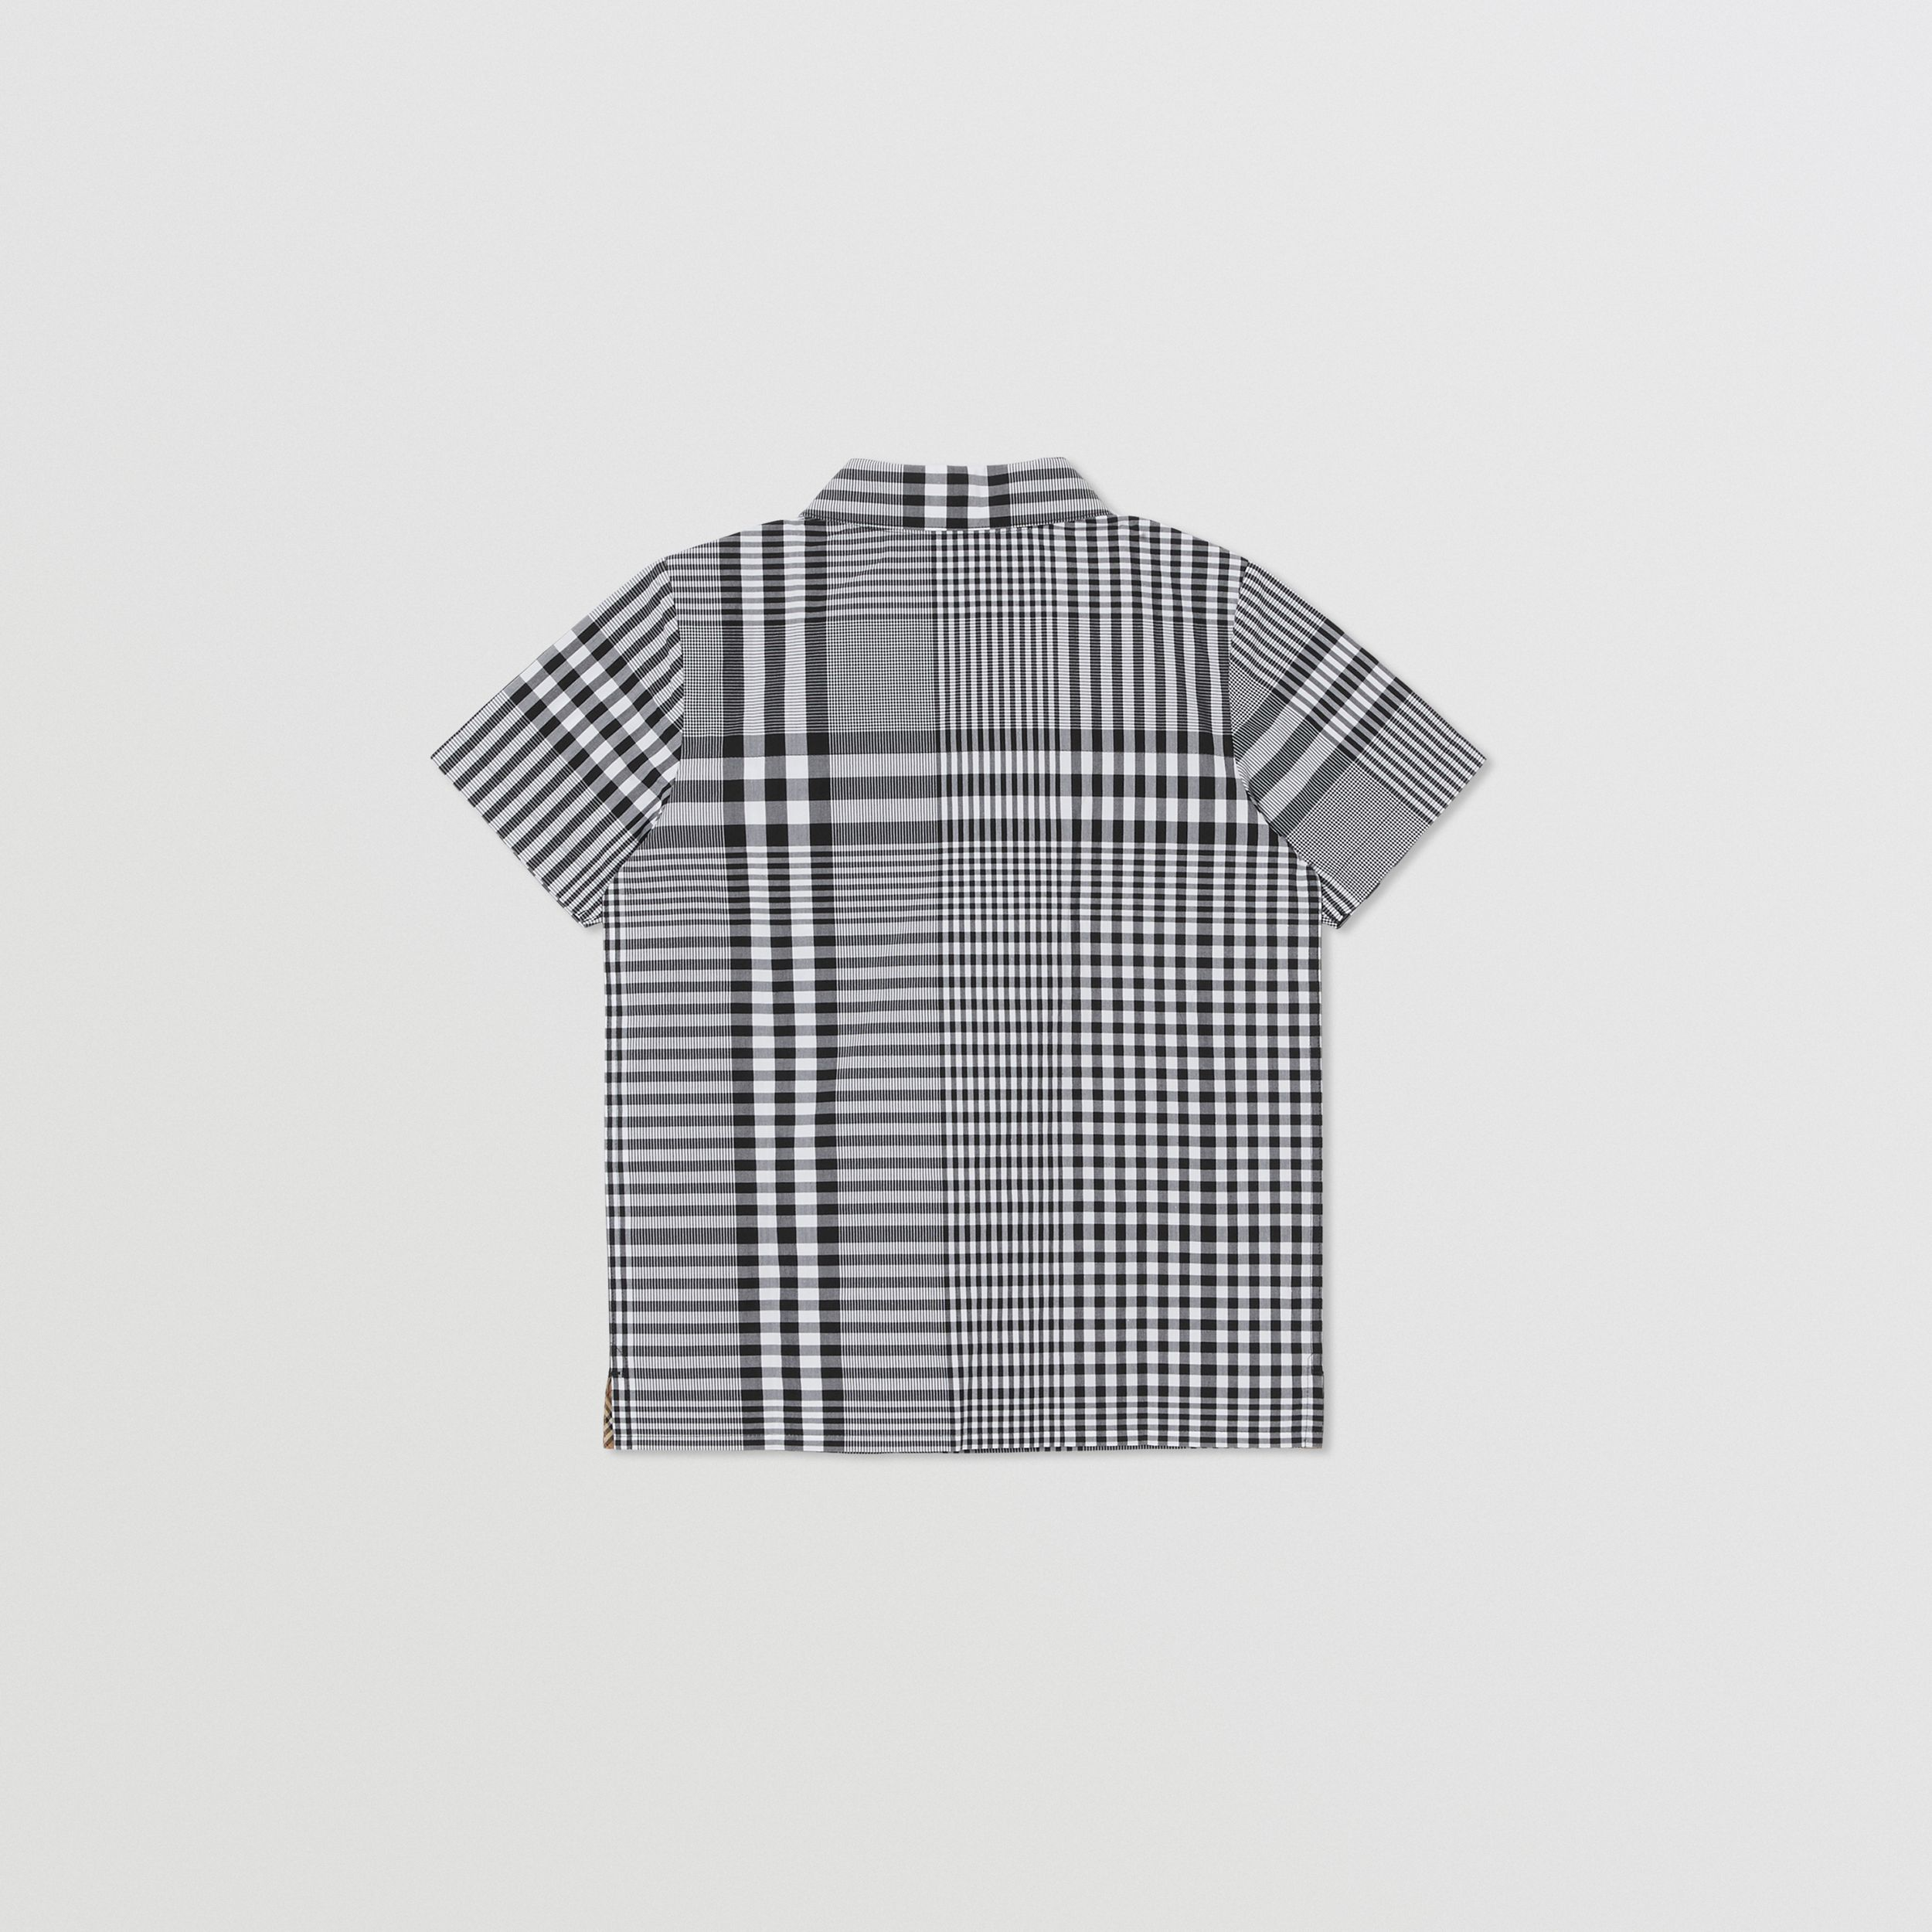 Short-sleeve Monogram Motif Check Cotton Shirt in Black | Burberry - 4